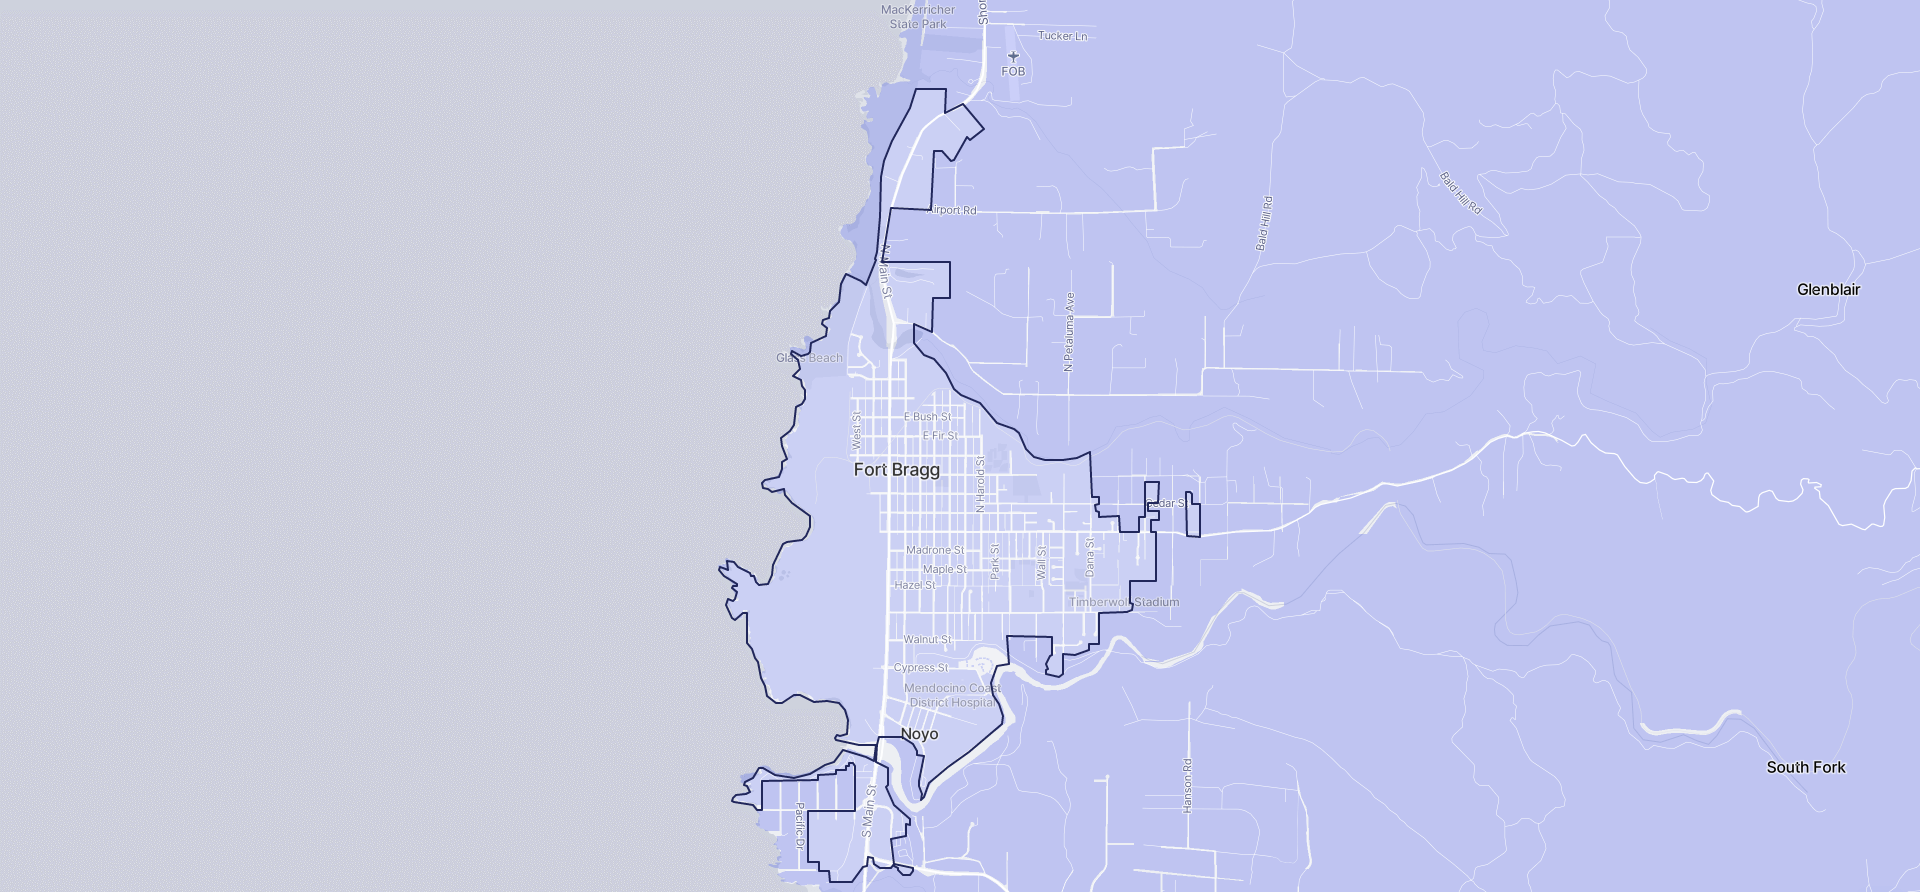 Image of Fort Bragg boundaries on a map.